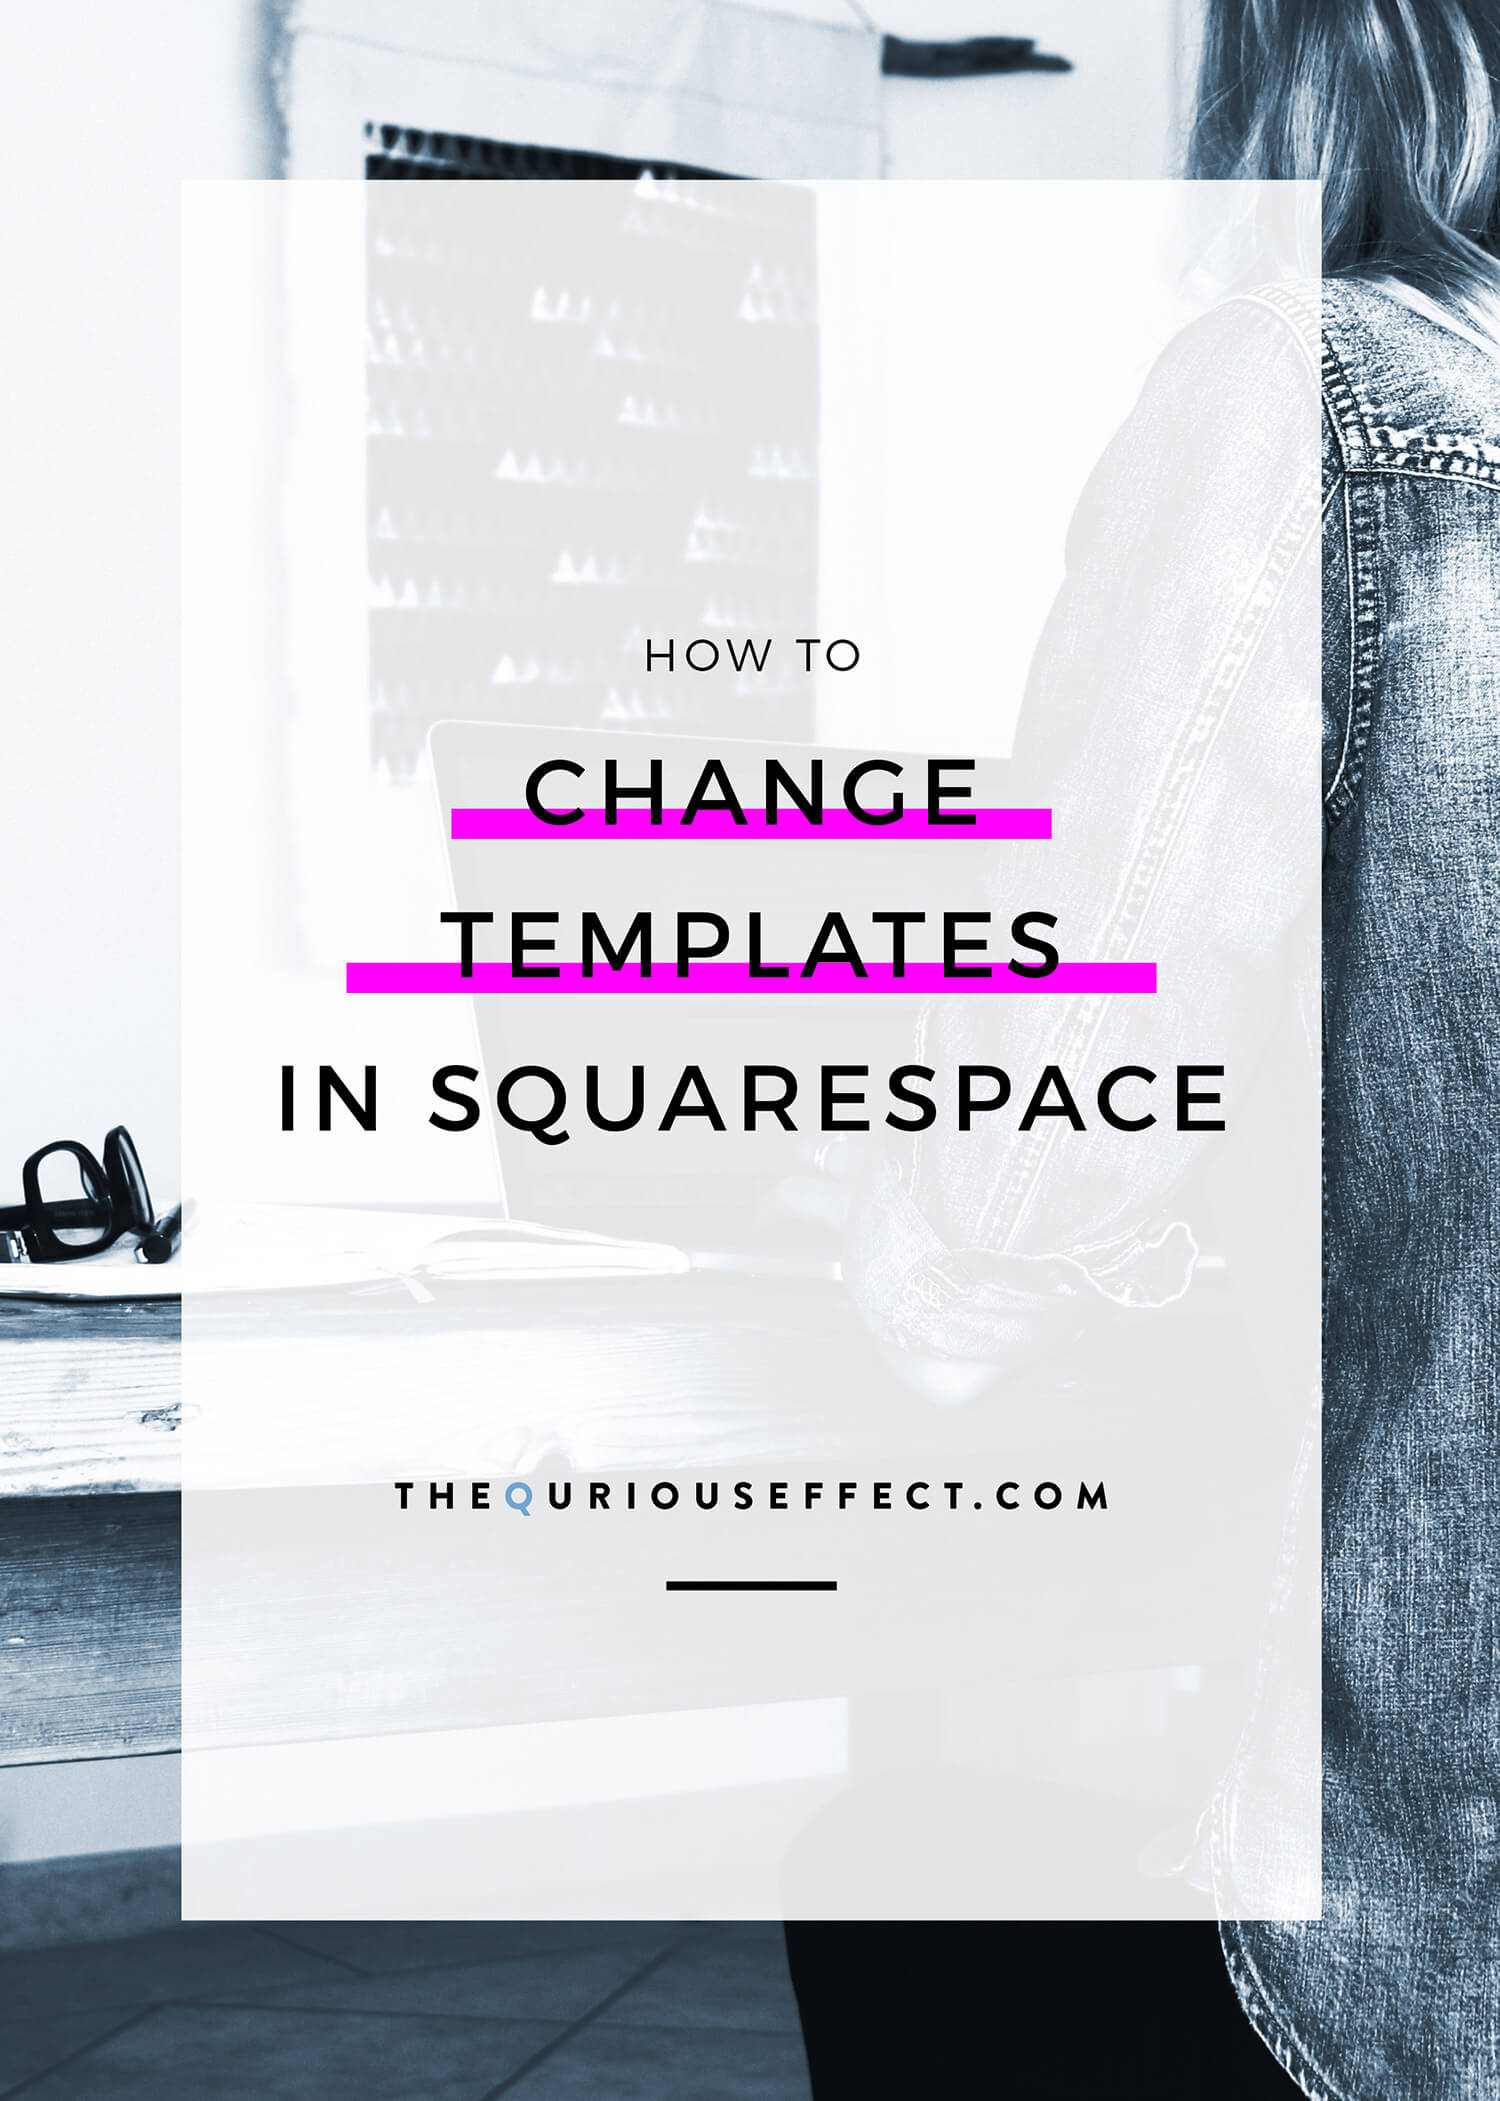 How to Change Templates in Squarespace | Squarespace Templates | Brine Squarespace Template | Squarespace Design | Squarespace Tips | Squarespace Ideas | Squarespace DIY #squarespace #squarespacetemplate